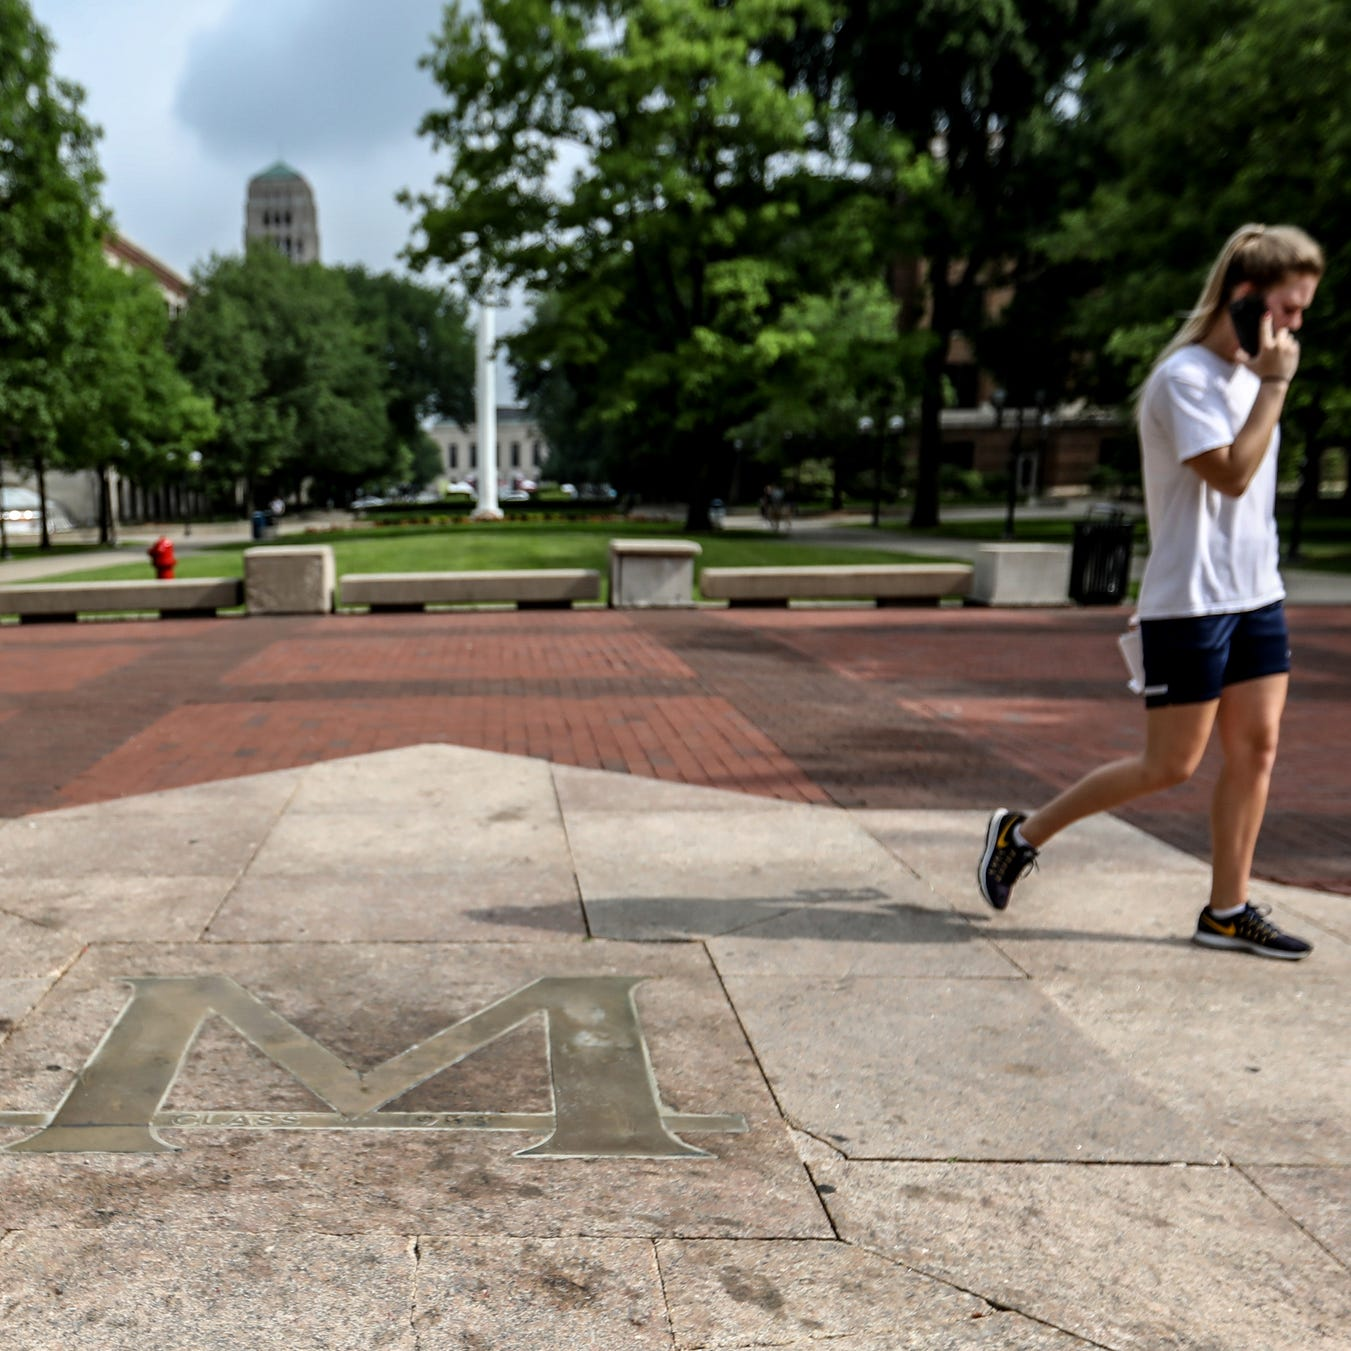 'MSU' spray-painted on University of Michigan landmark ahead of game